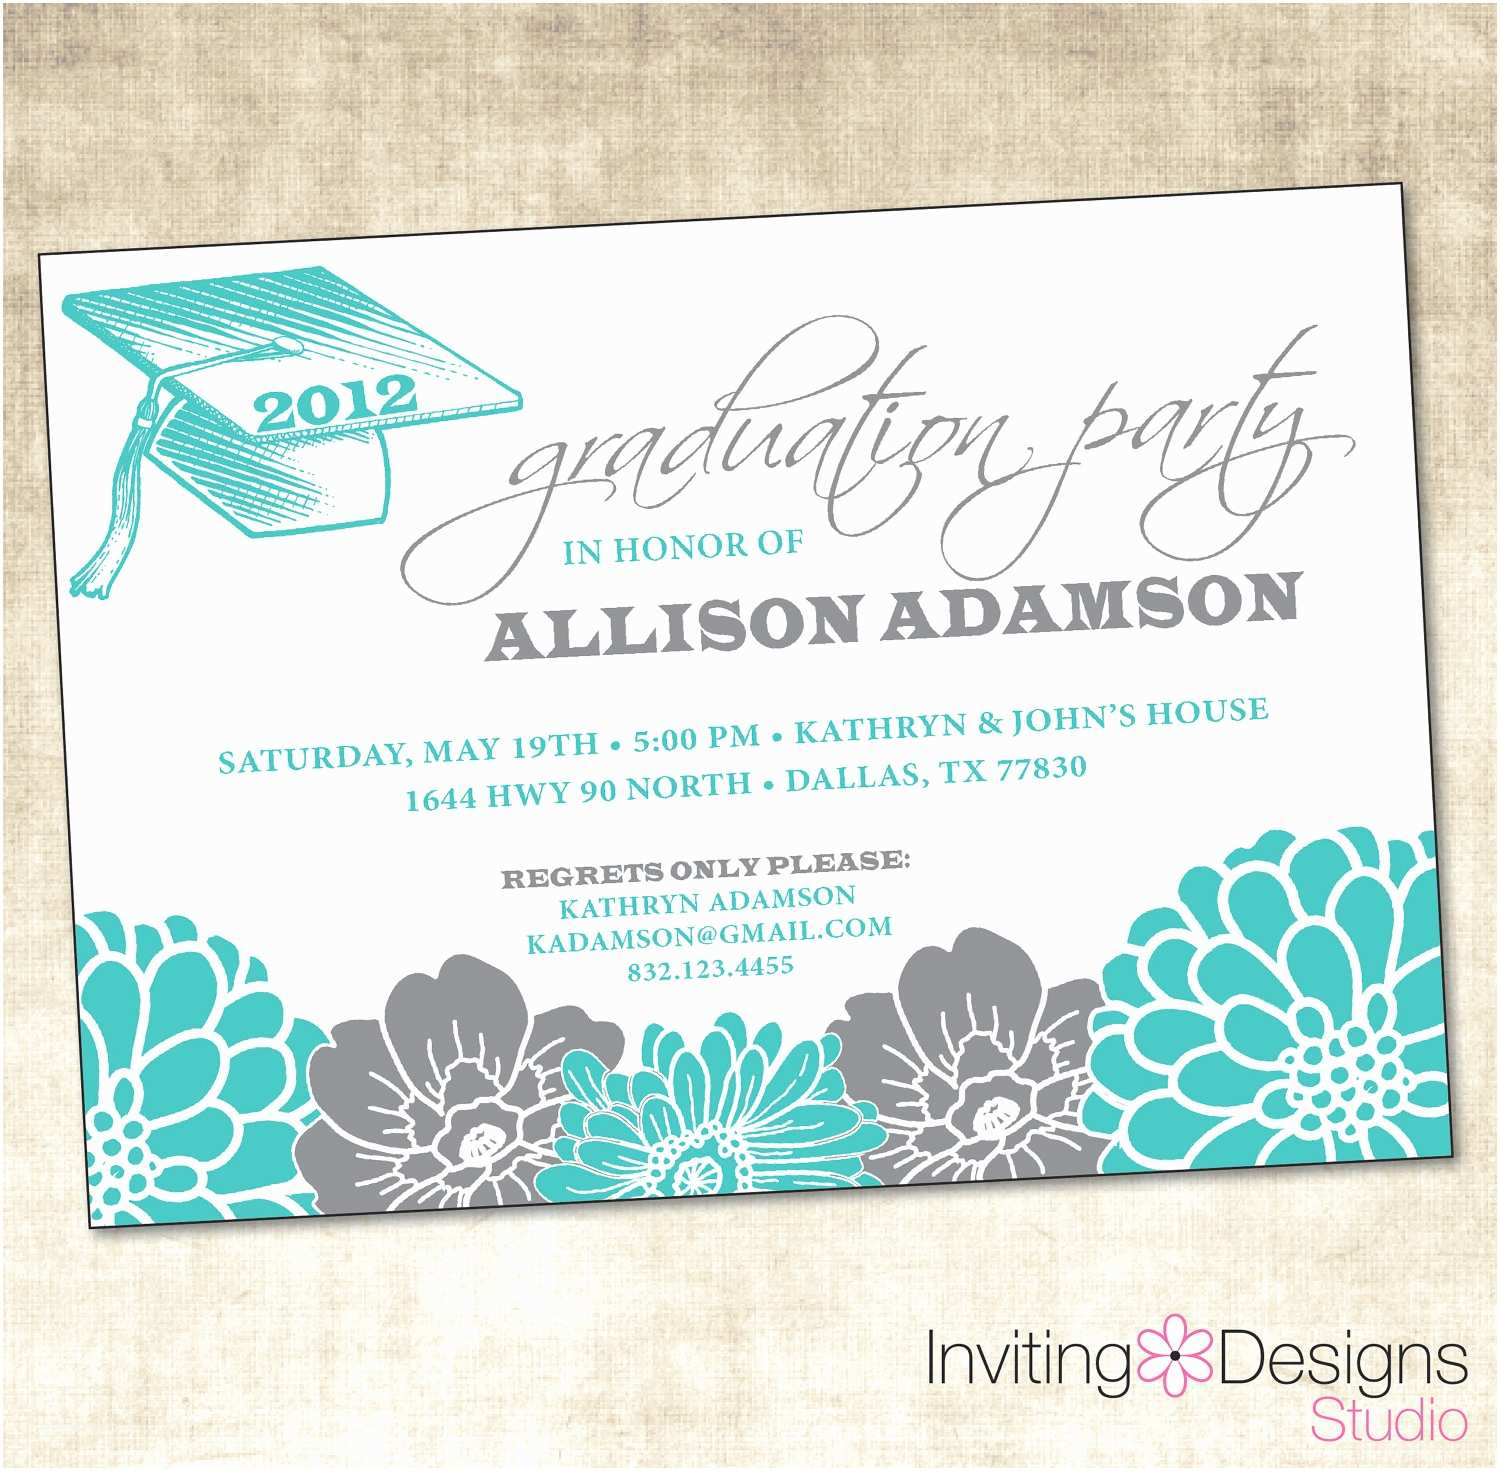 Sample Graduation Party Invitation Graduate Invites Cheap Graduation Party Invitations for